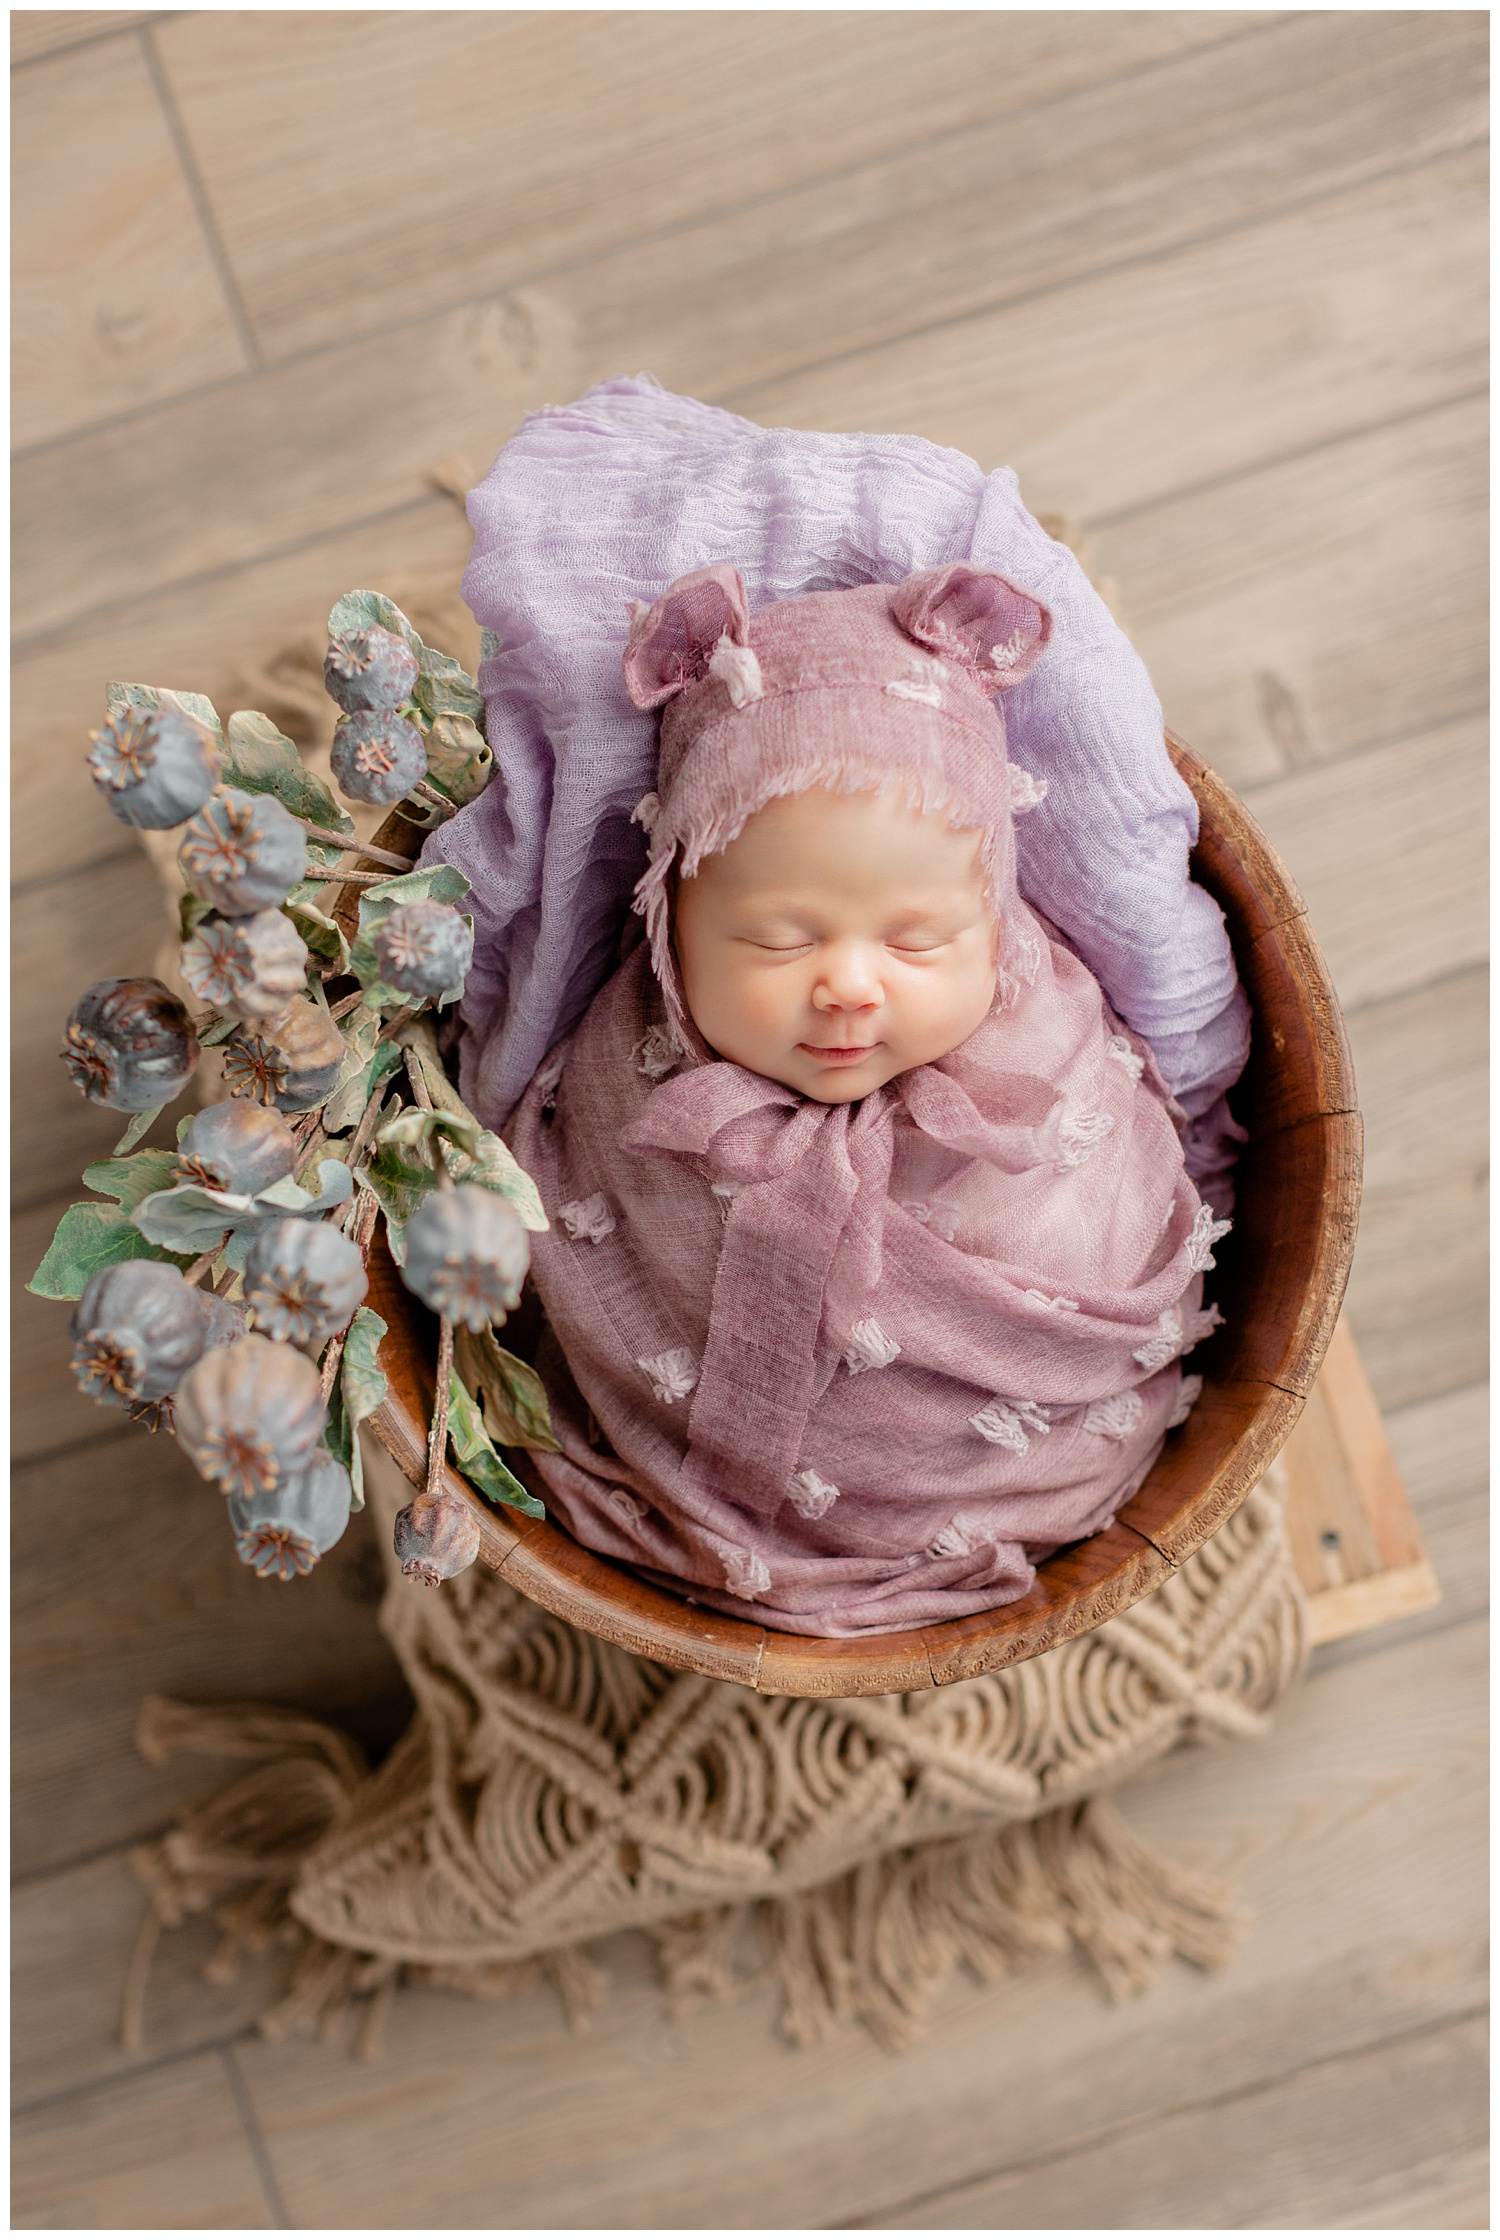 Newborn baby girl Remi swaddled in a mauve textured wrap and bear ear bonnet lying in a basket full of flowers | CB Studio